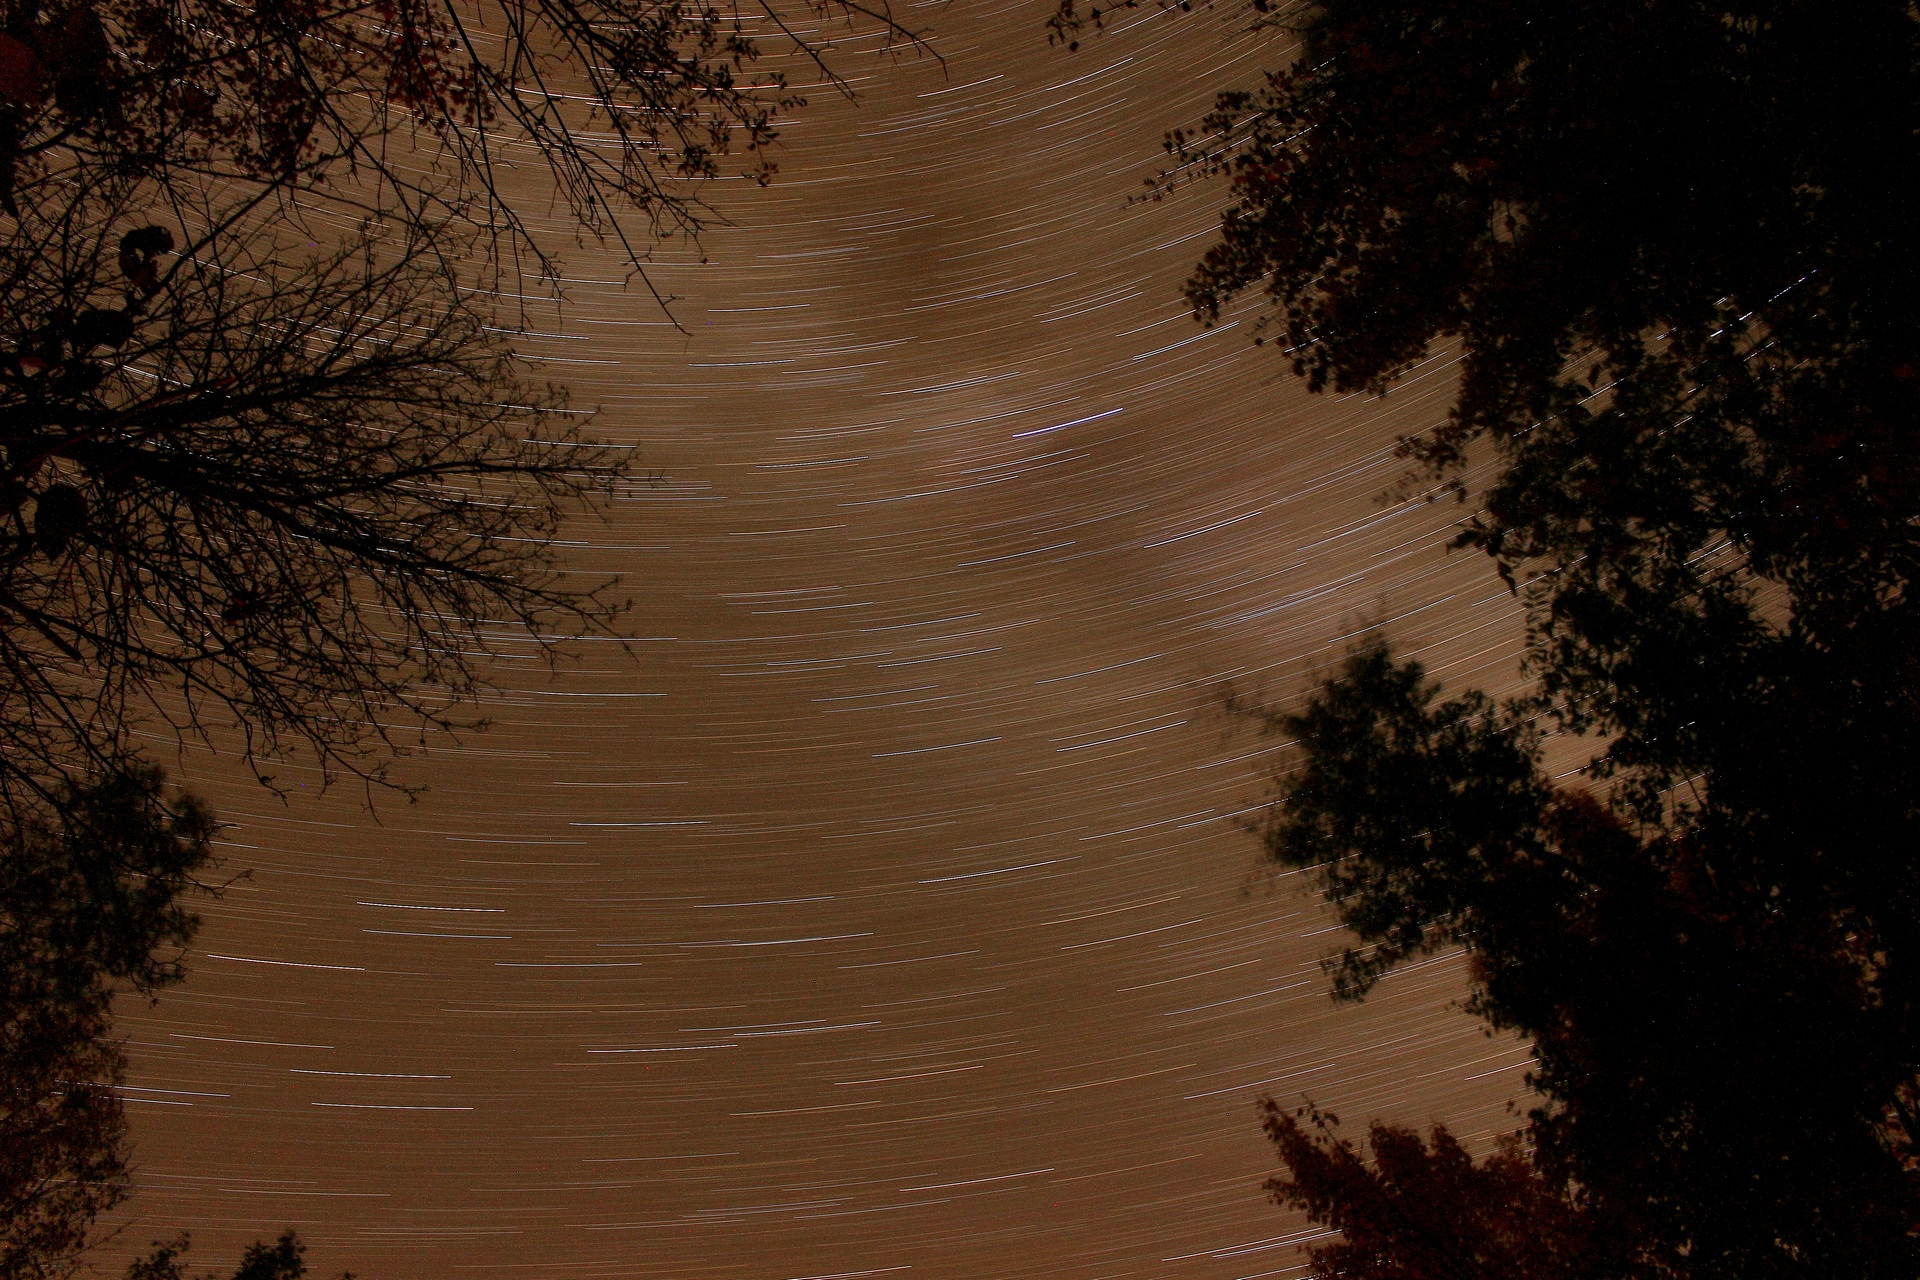 StarTrail - Digital (Action) - Name Withheld Per Request